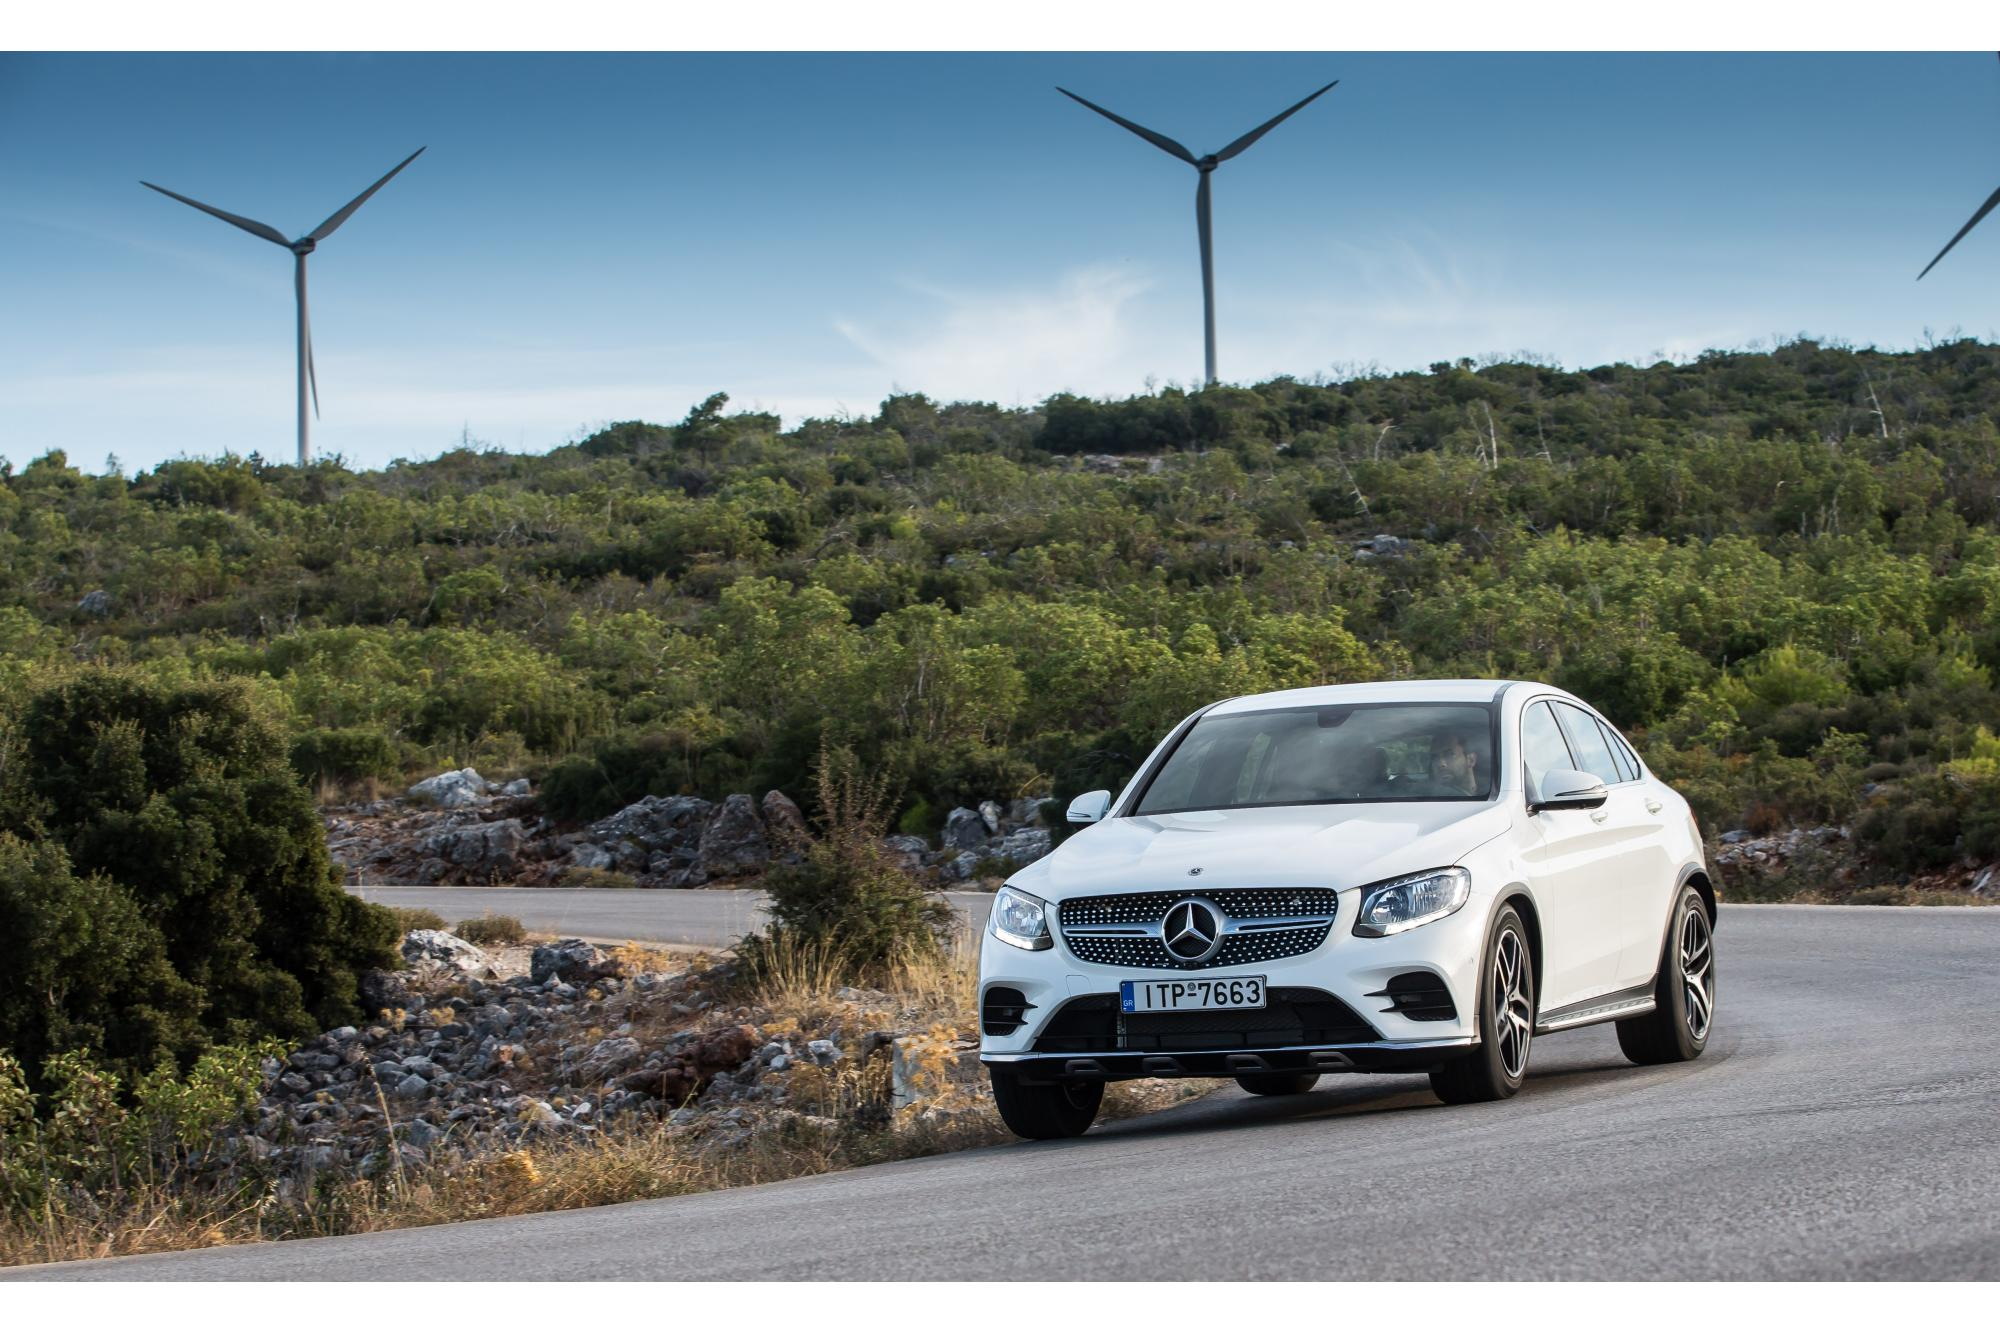 Mercedes-Benz GLC Coupe 250d 4MATIC 204PS